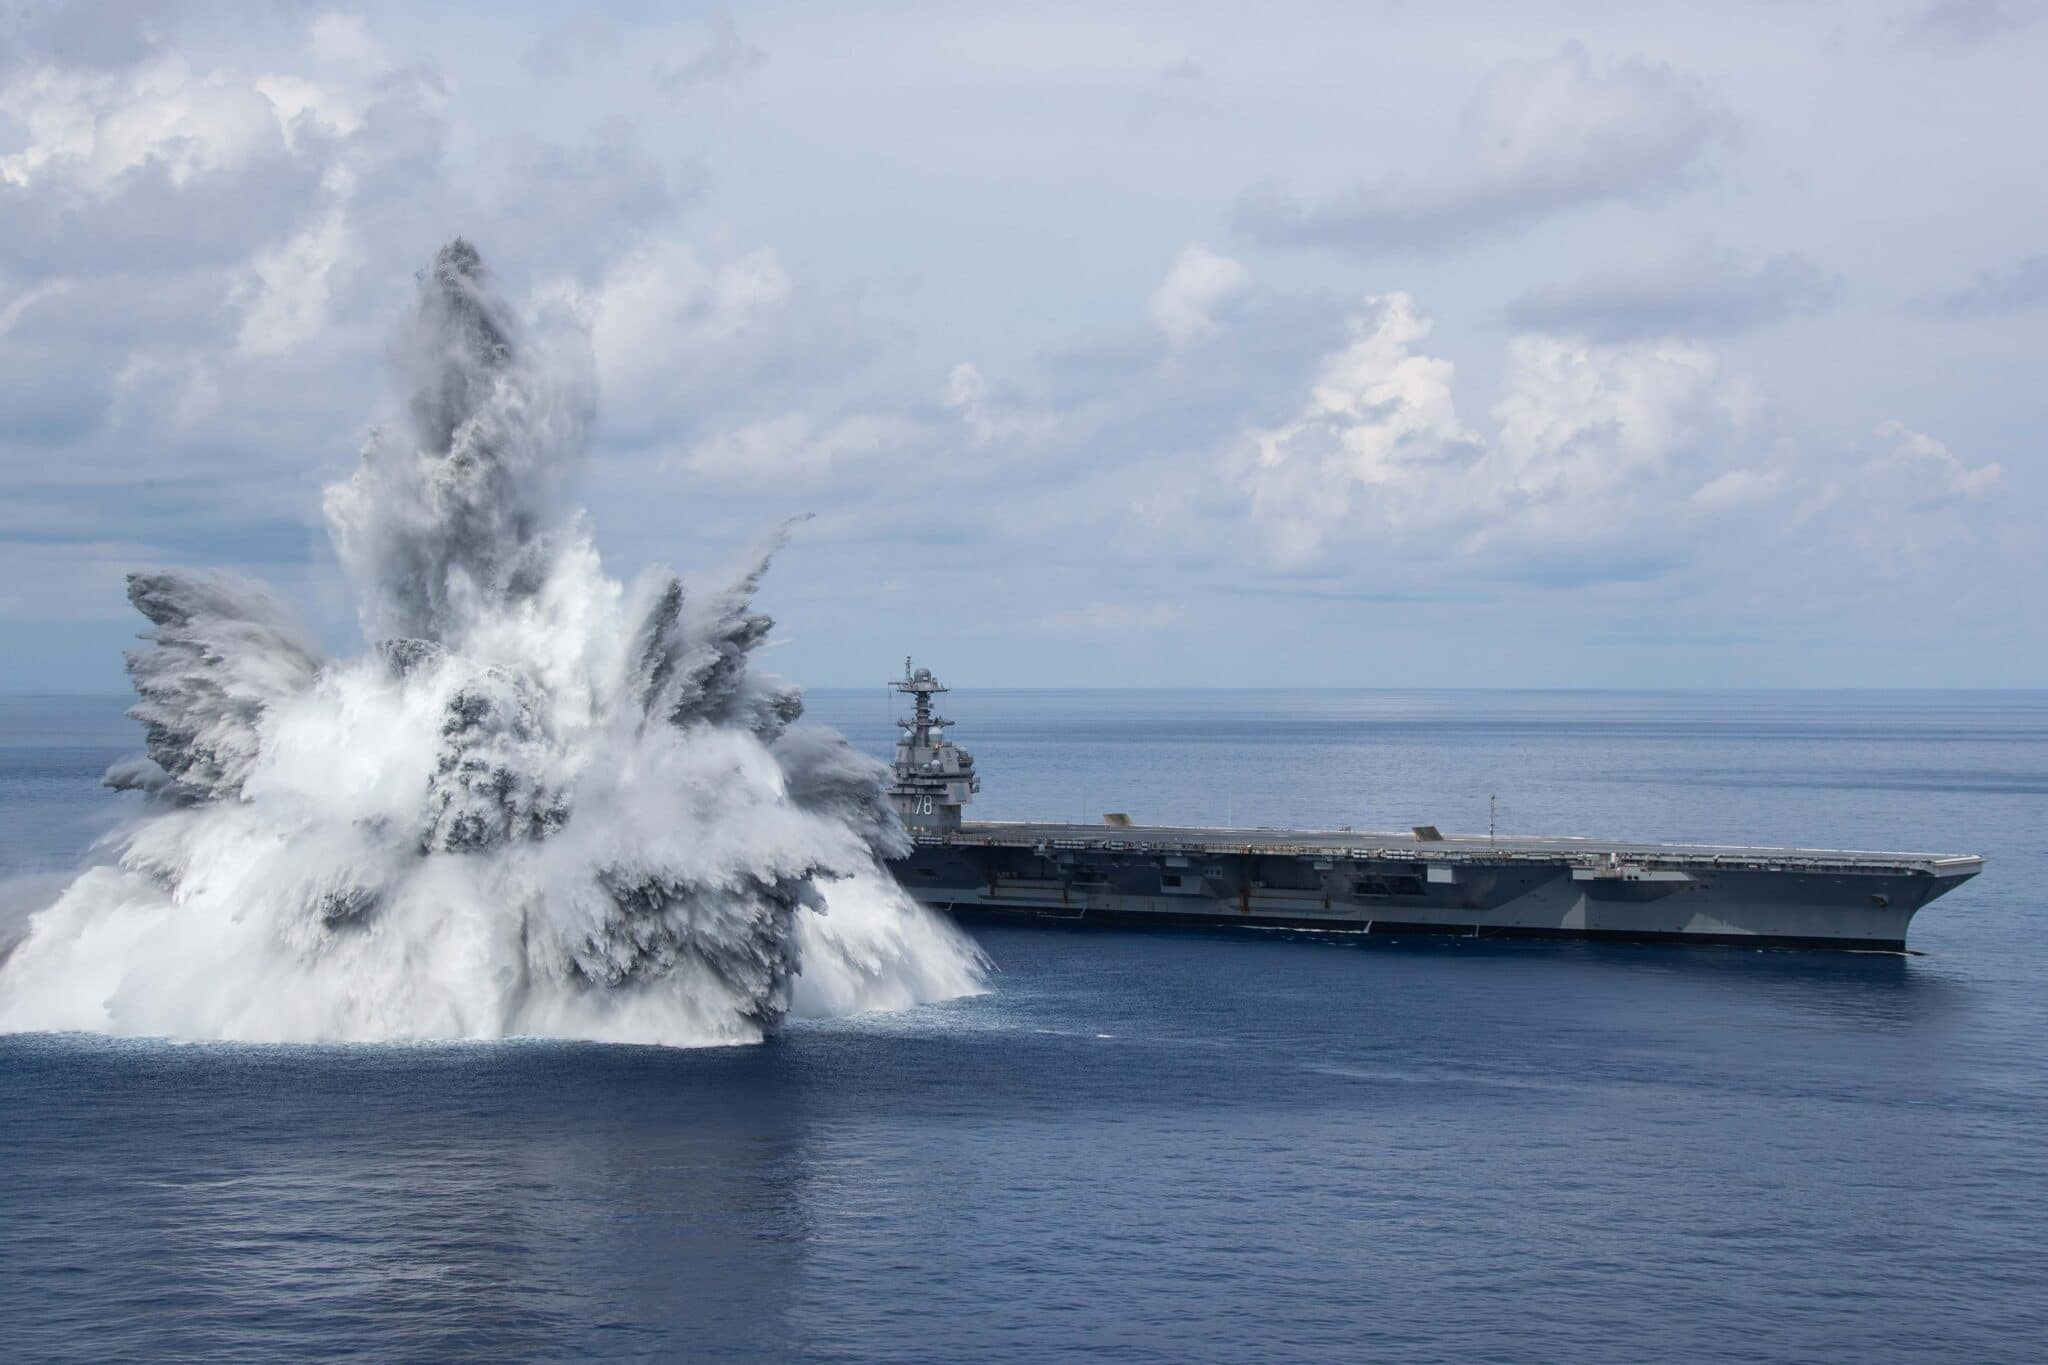 https://www.navalnews.com/wp-content/uploads/2021/08/USS-Gerald-R.-Ford-conducted-3rd-shock-trials-scaled.jpg